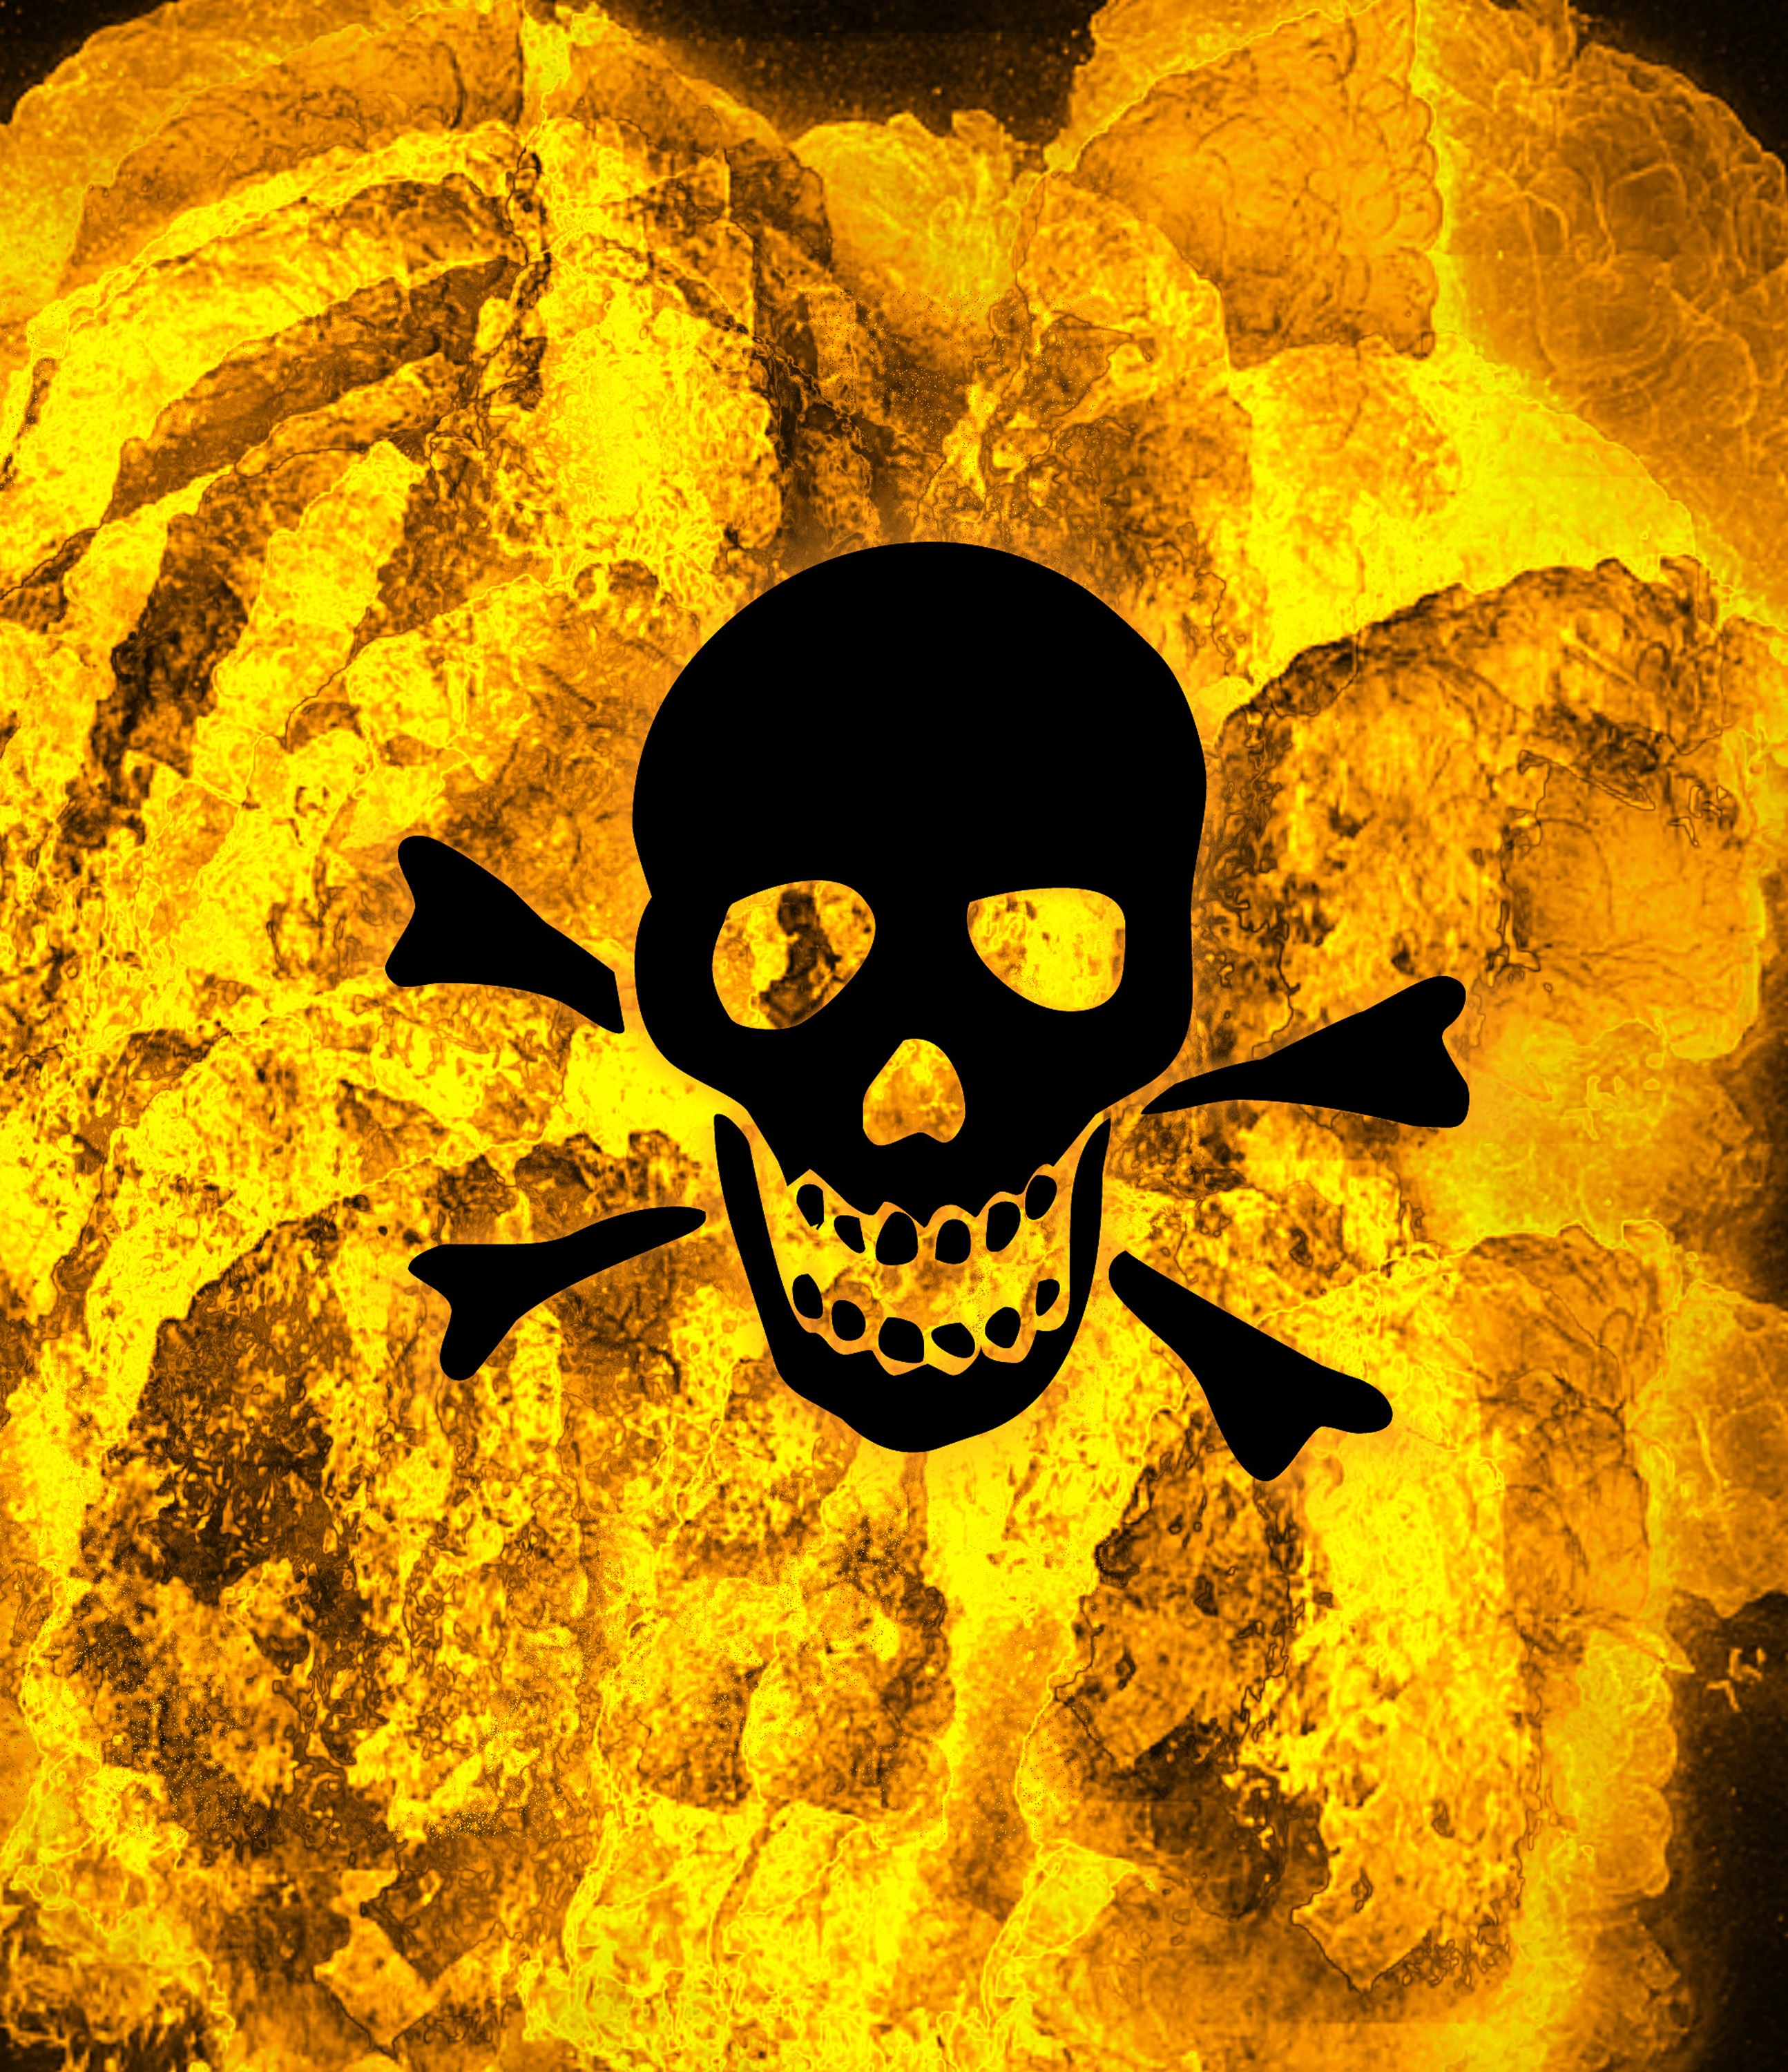 a skull and bones on an orange exploding background